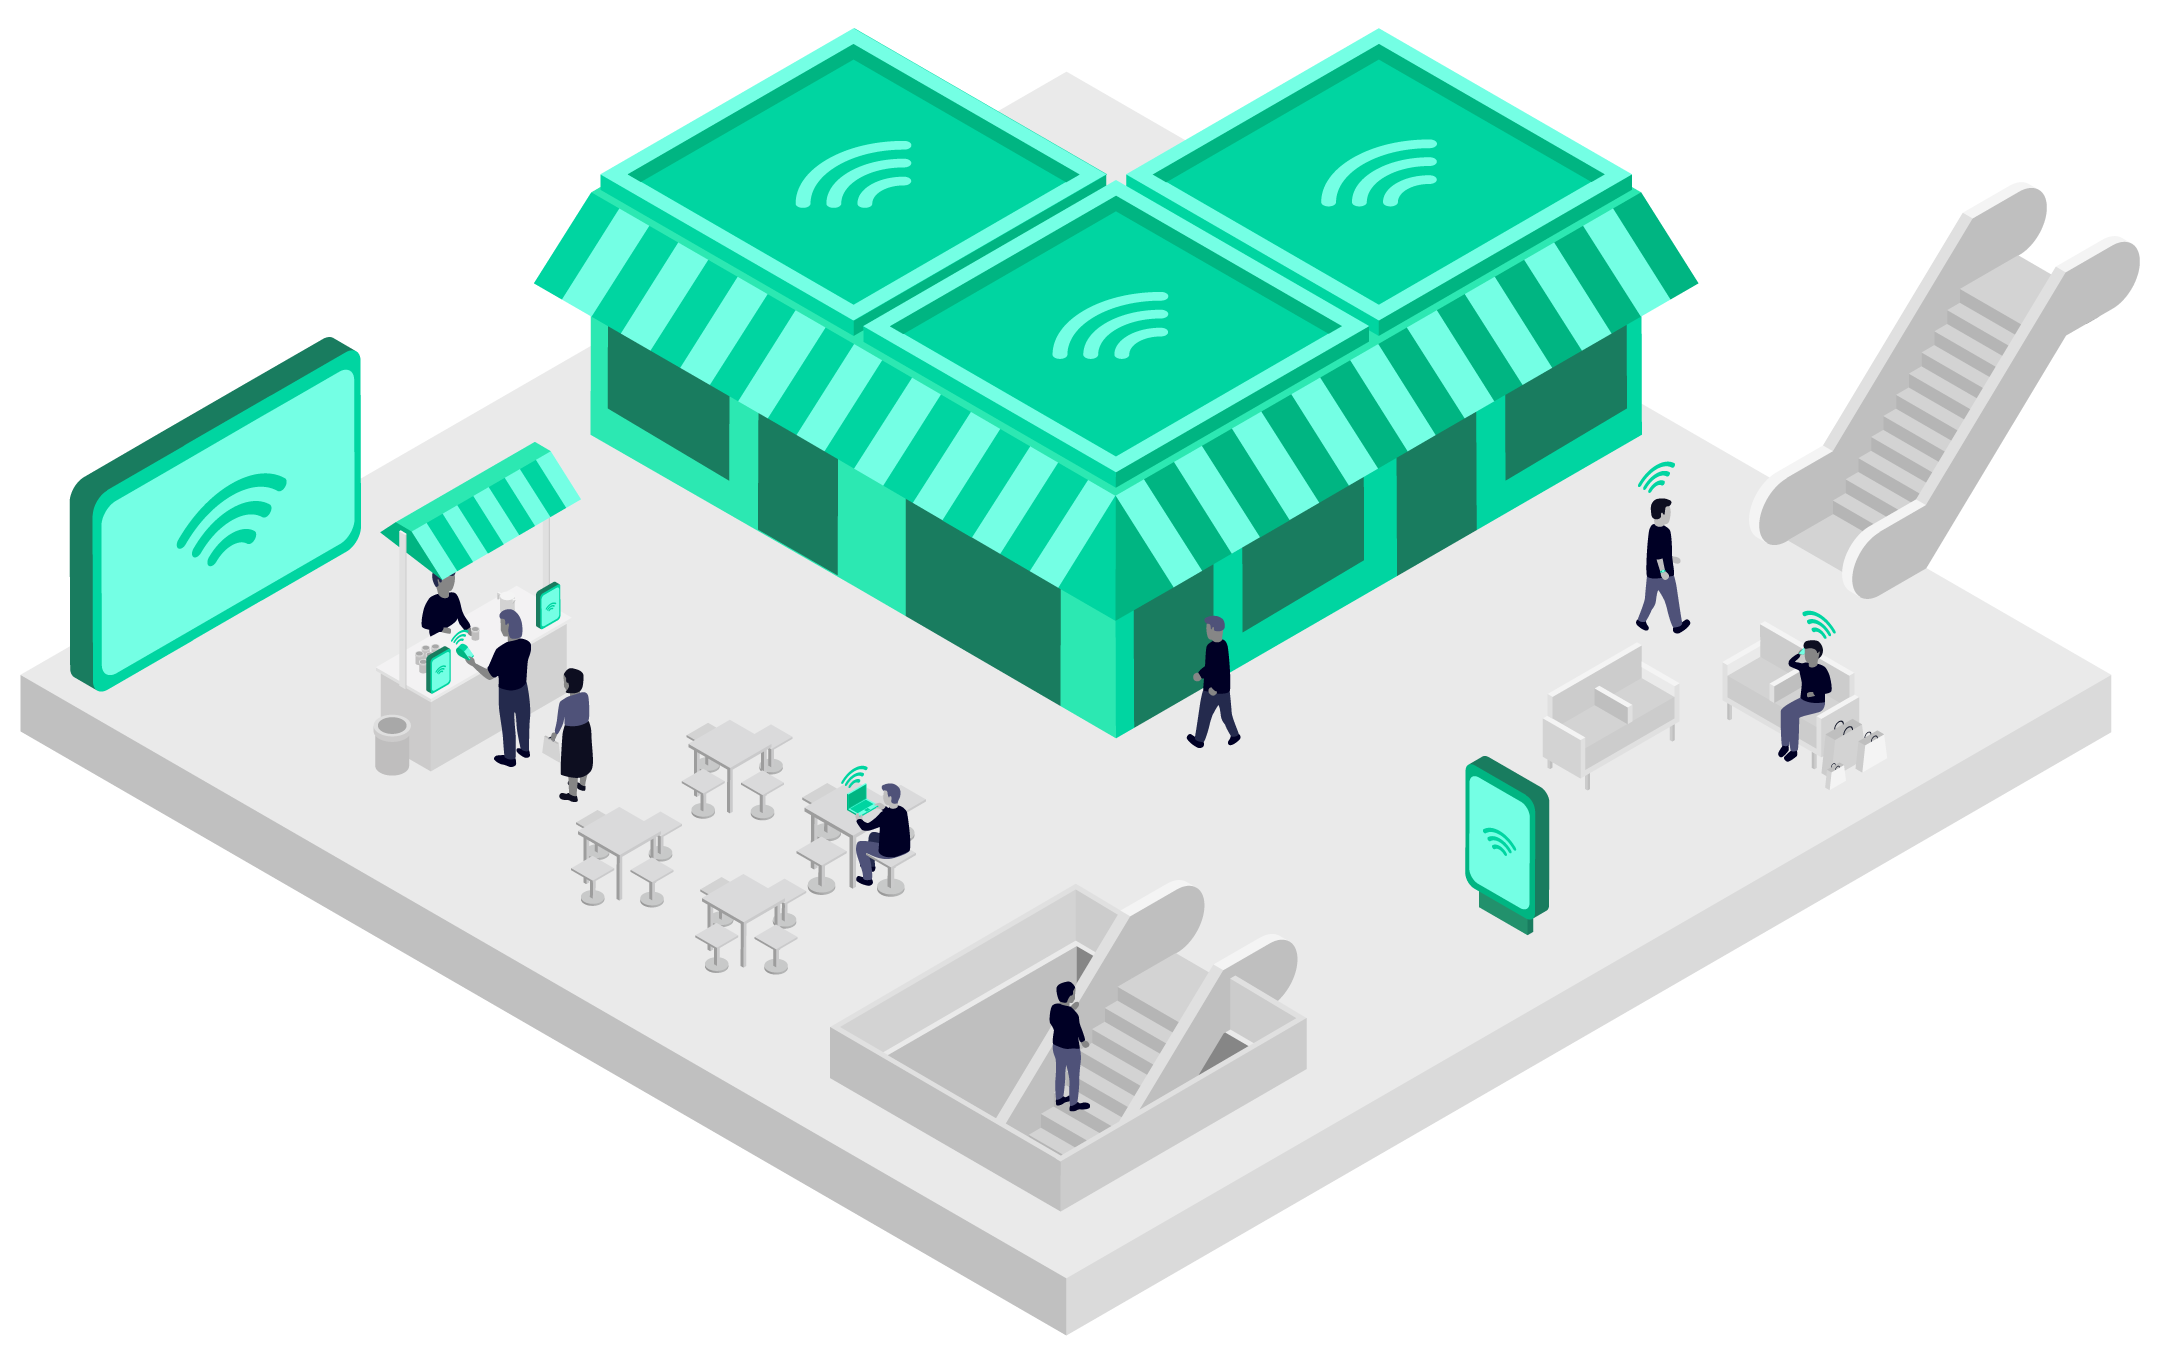 Illustration showing how 5G connectivity could benefit a shopping centre